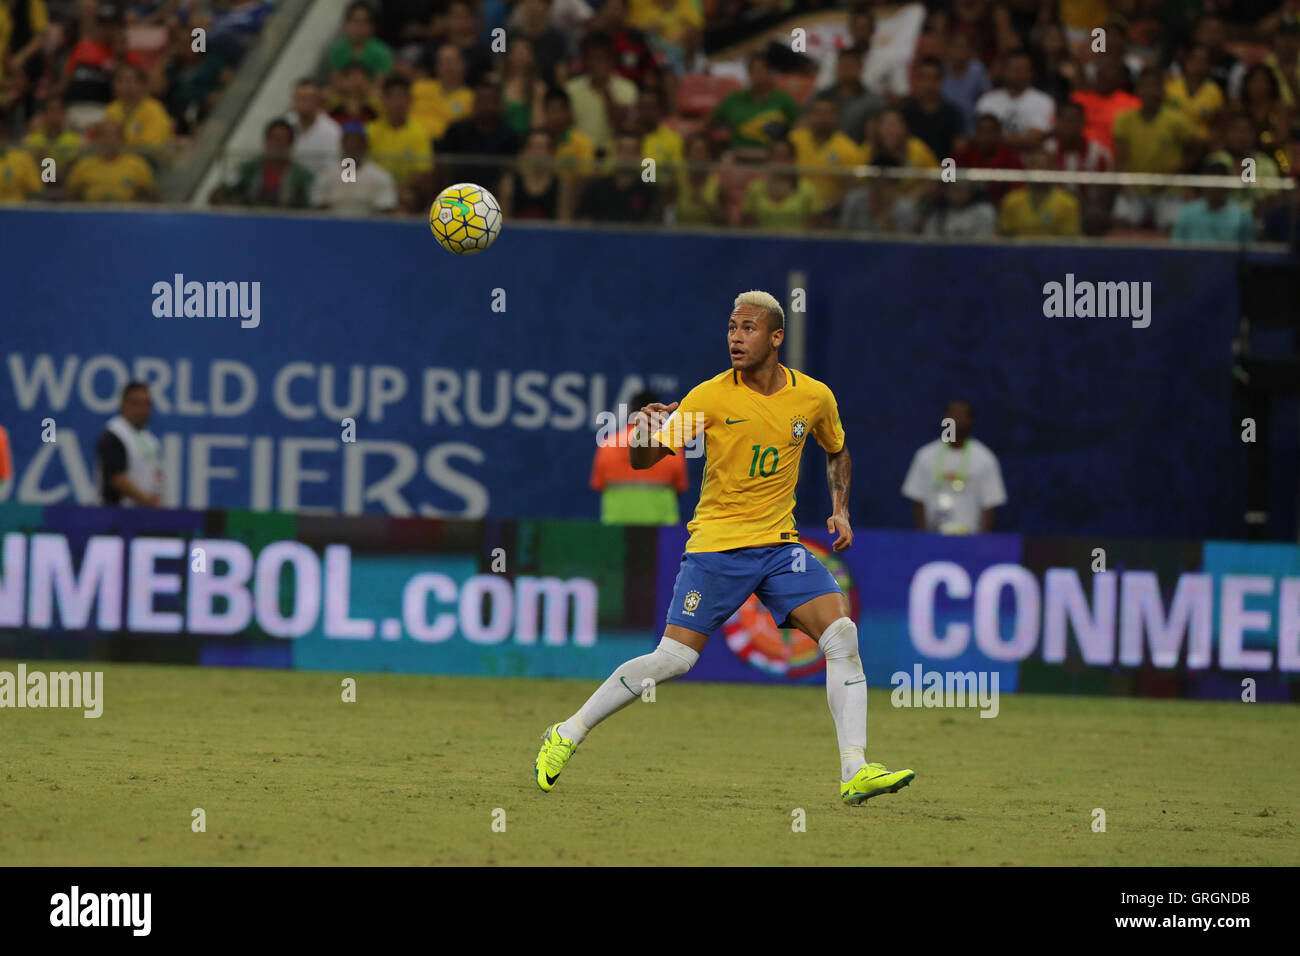 MANAUS, AM - 06.09.2016: BRAZIL VS COLOMBIA - Neymar leads the attack on the ball during the match between Brazil - Stock Image